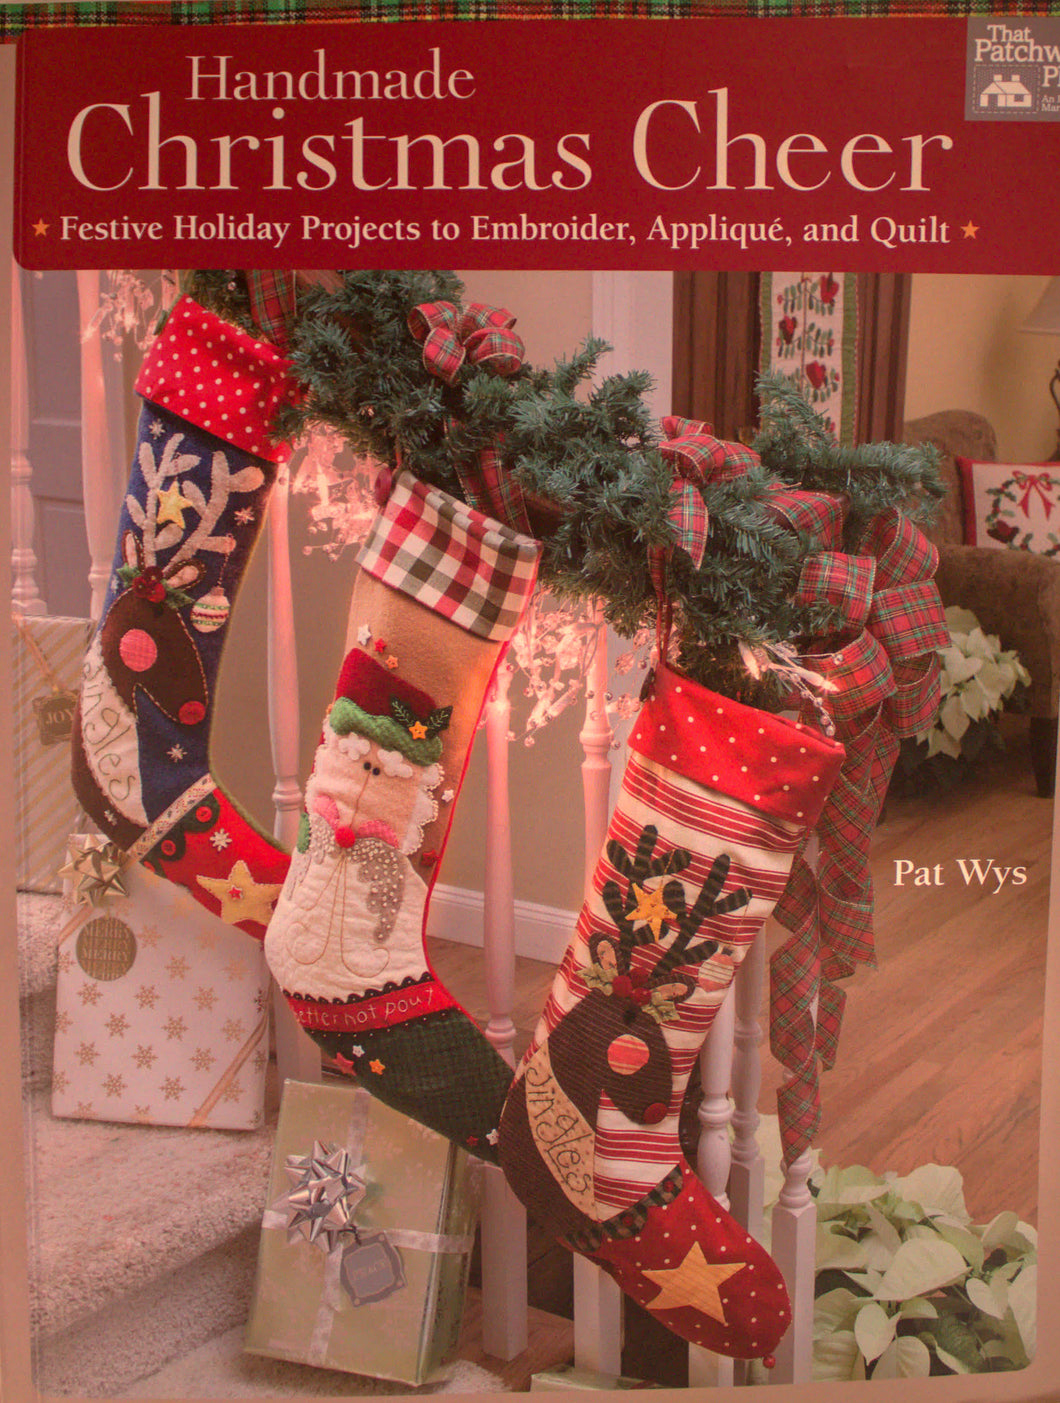 Handmade Christmas Cheer: Festive Holiday Projects to Embroider, Appliqué, and Quilt